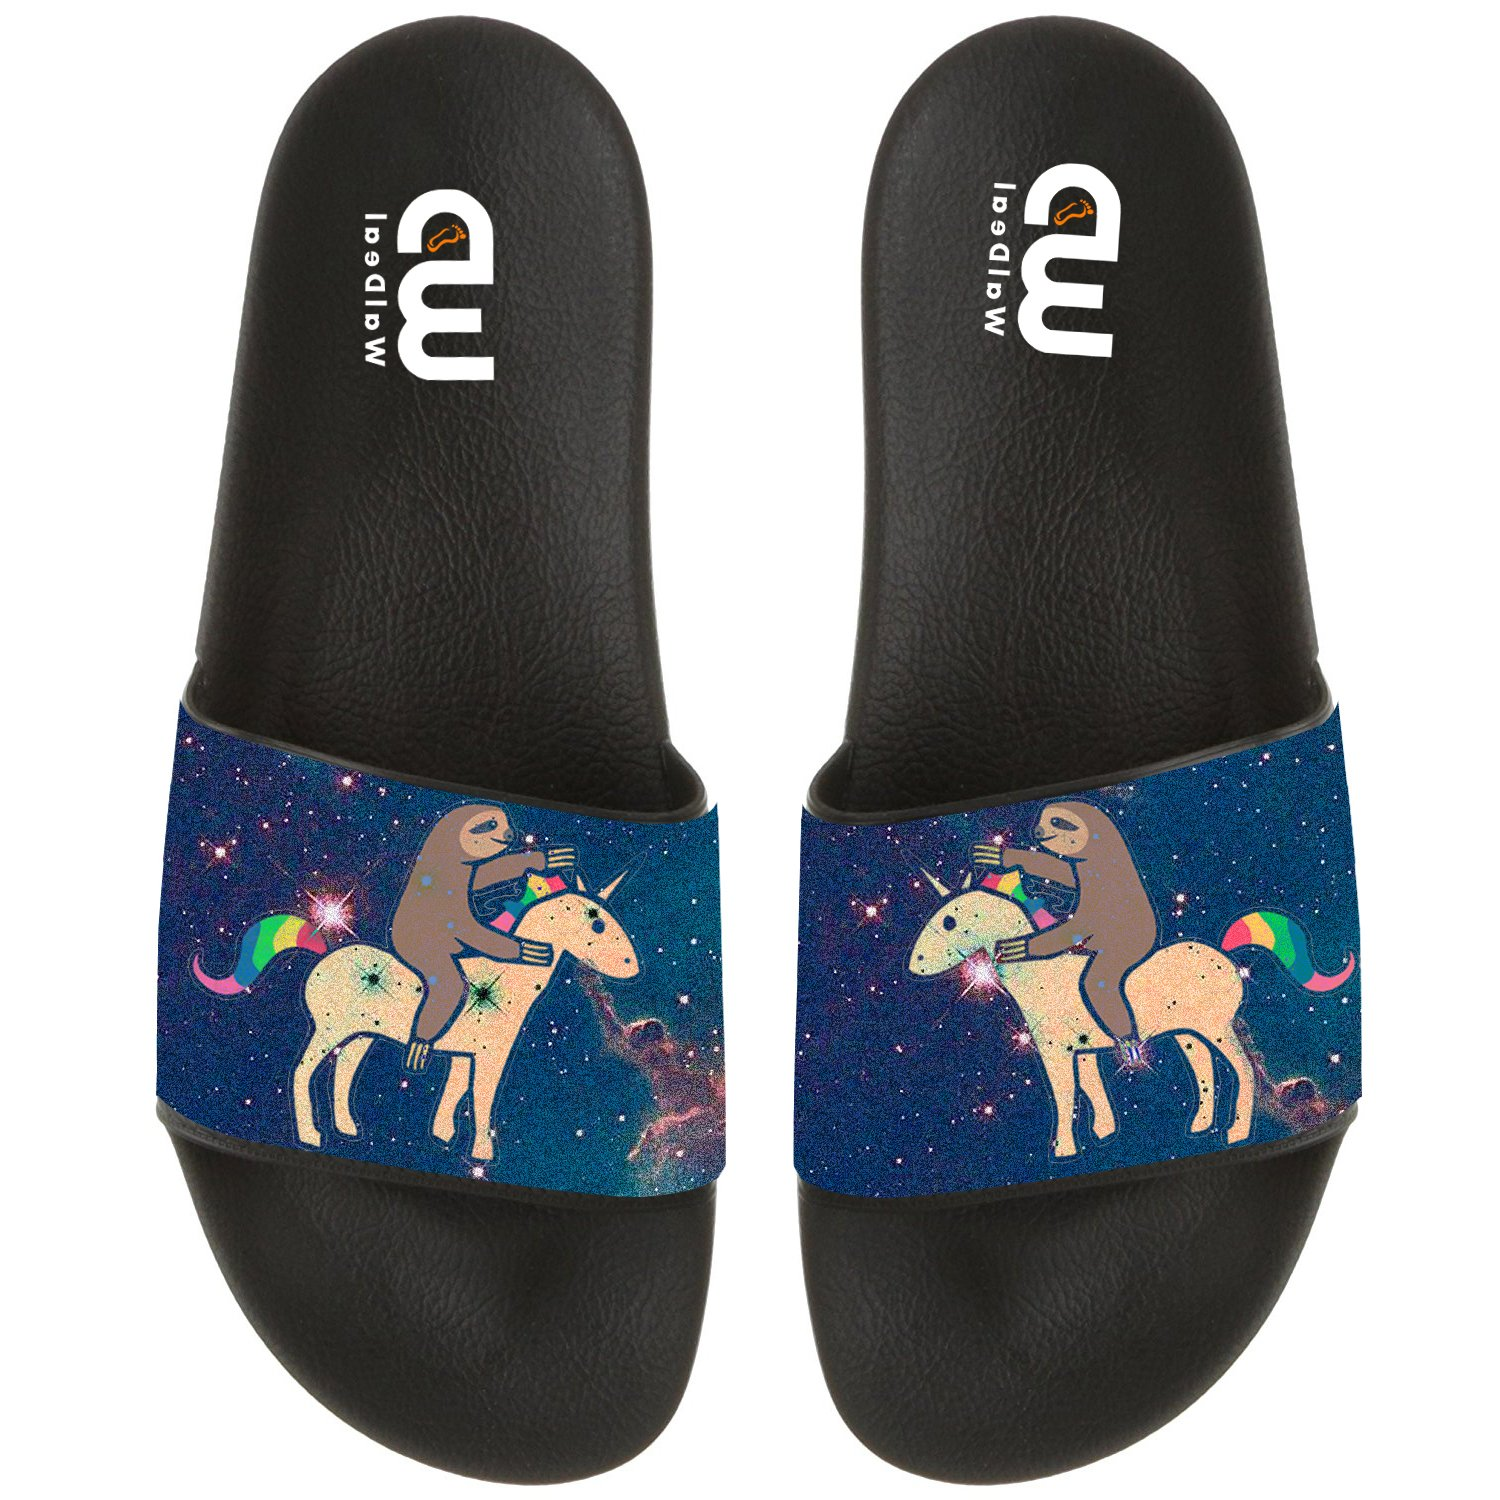 Cartoon Sloth with Unicorn Summer Slide Slippers For Boy Girl Men Women Outdoor Indoor Beach Sandal Shoes